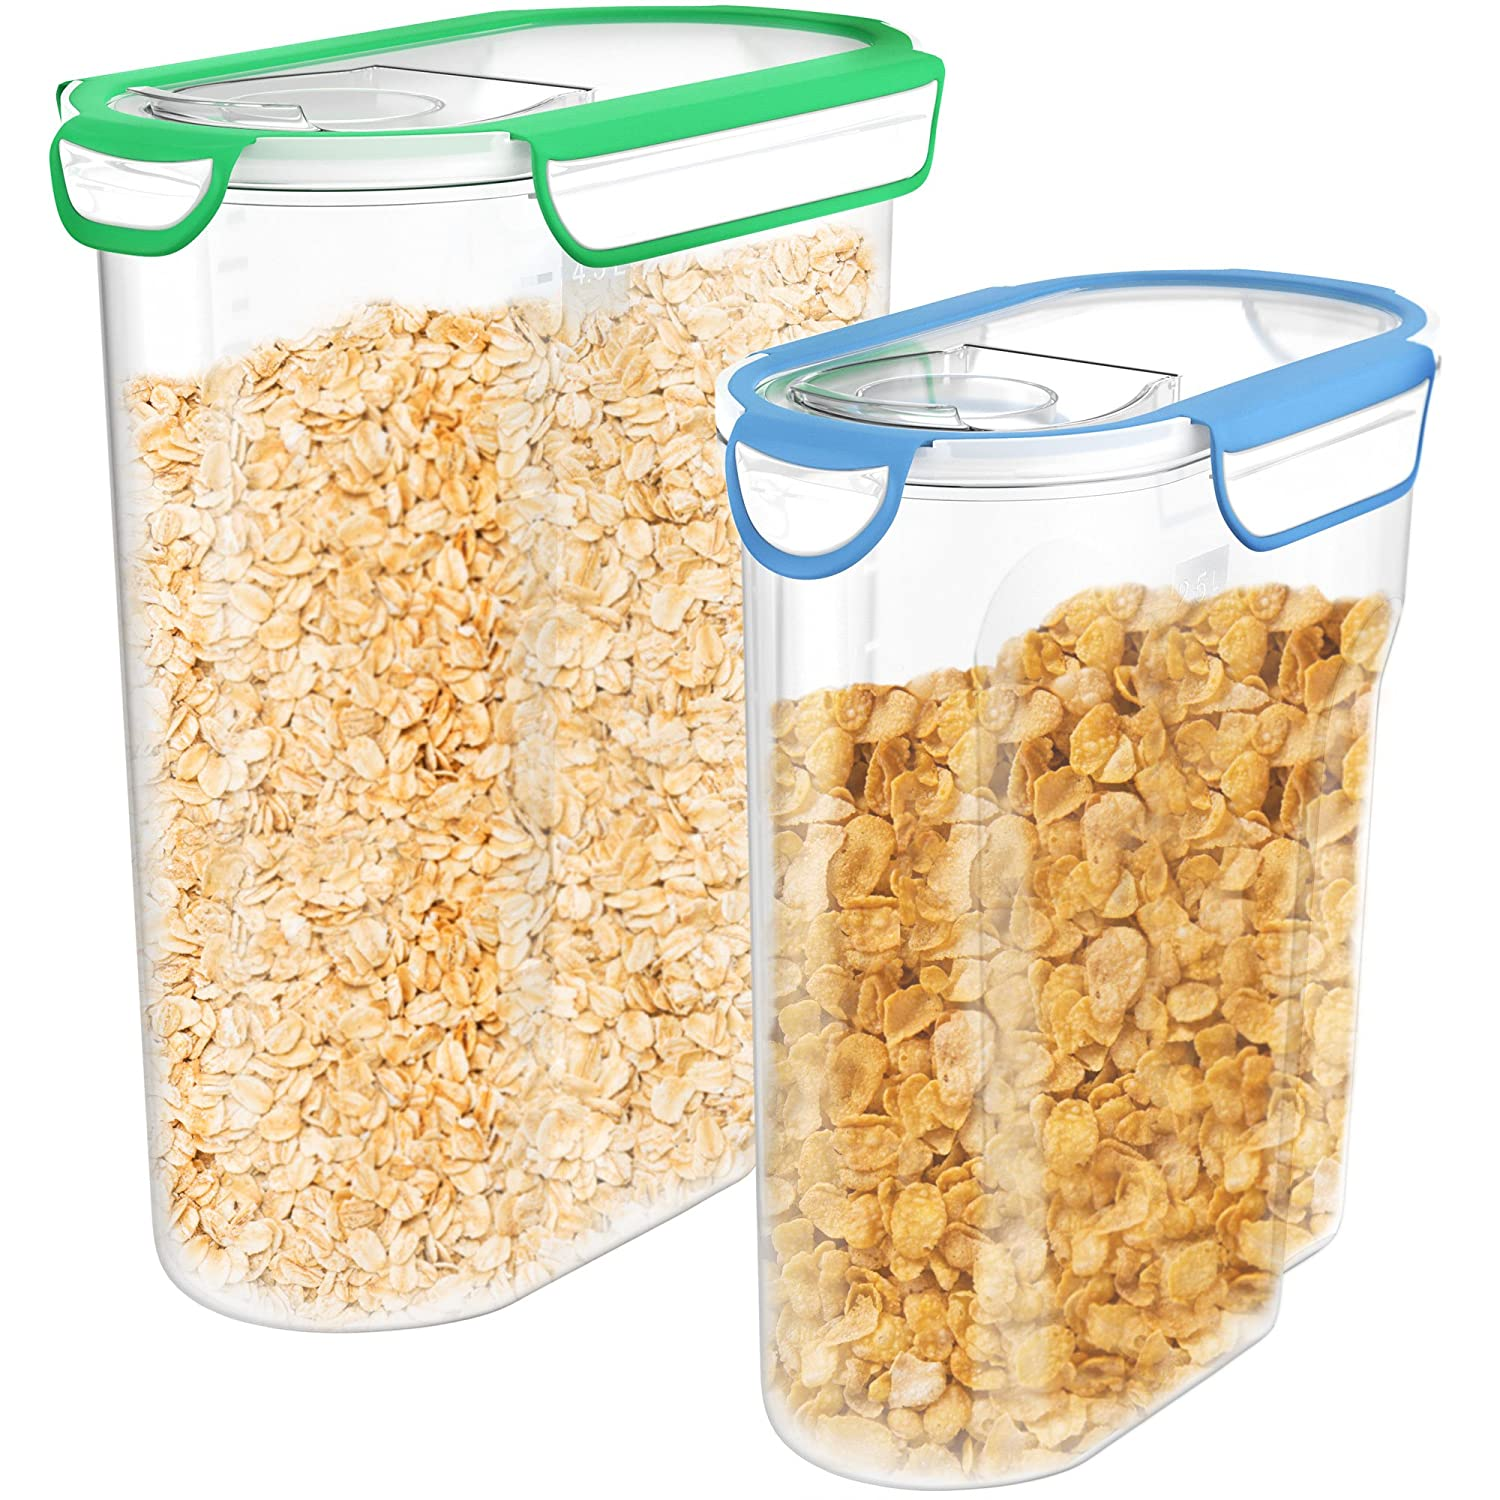 Vremi Plastic Cereal Containers Storage Set with Lids - 2 Pack BPA Free 3L and 5 Liter Dry Food Container Set with Pour Spout and Airtight Silicone Seal Holds 12 or 21 Cups of Snacks Pasta or Pet Food VRM020307N